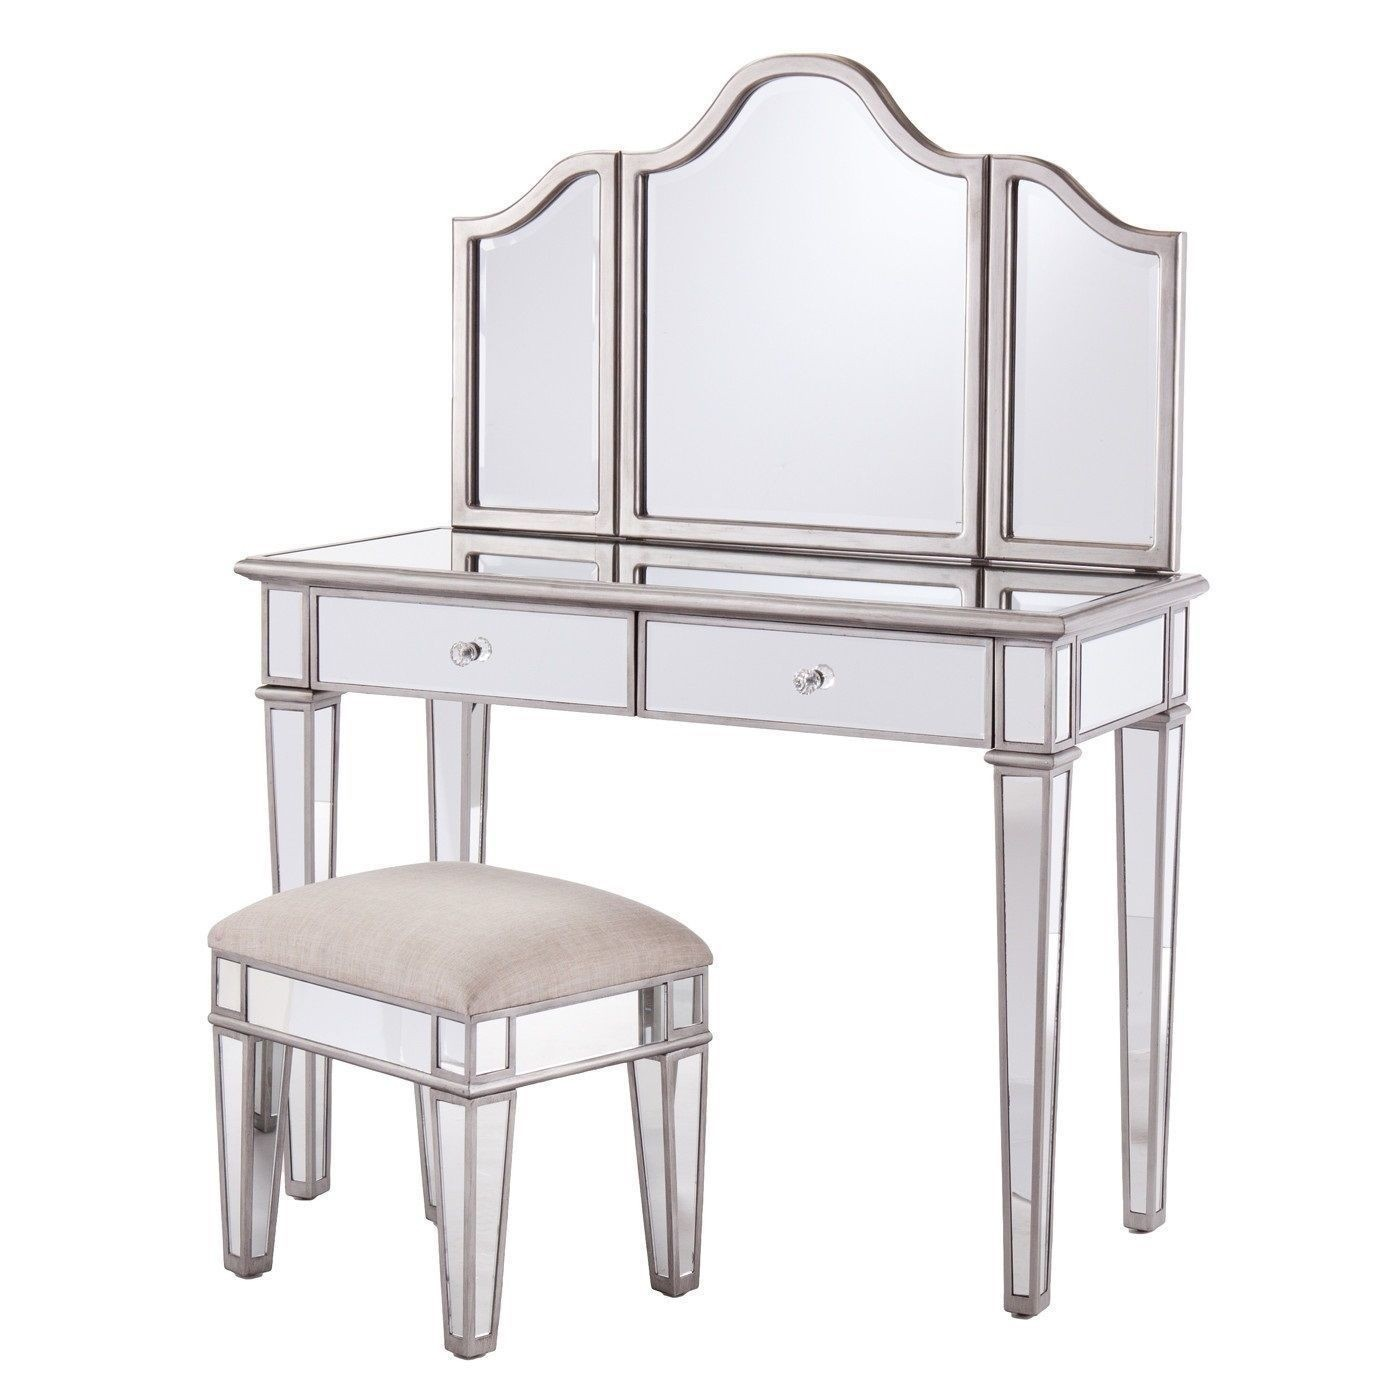 Mirrored dressing table stool and freestanding mirror abreo home furniture - Stool for vanity table ...